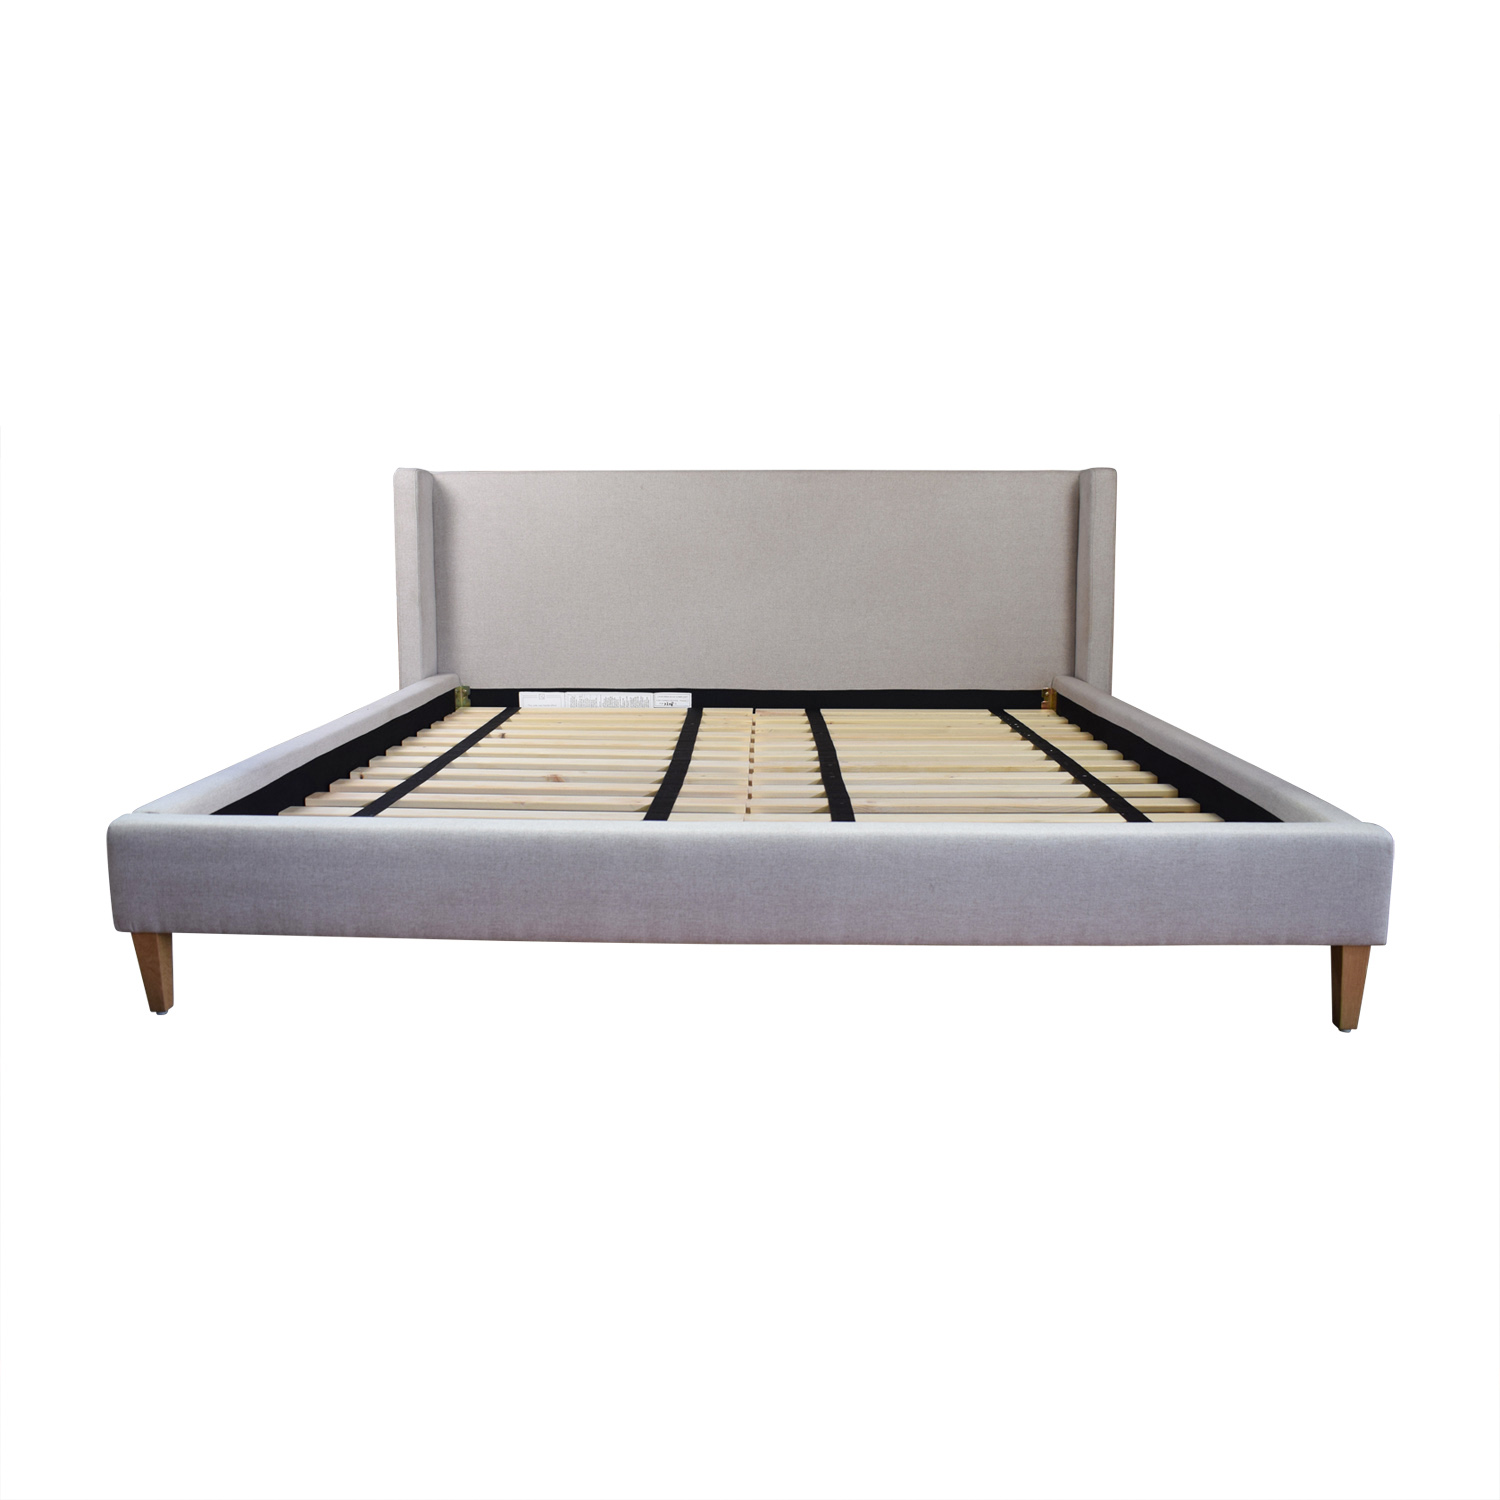 Oliver Dune Platform King Bed Frame on sale